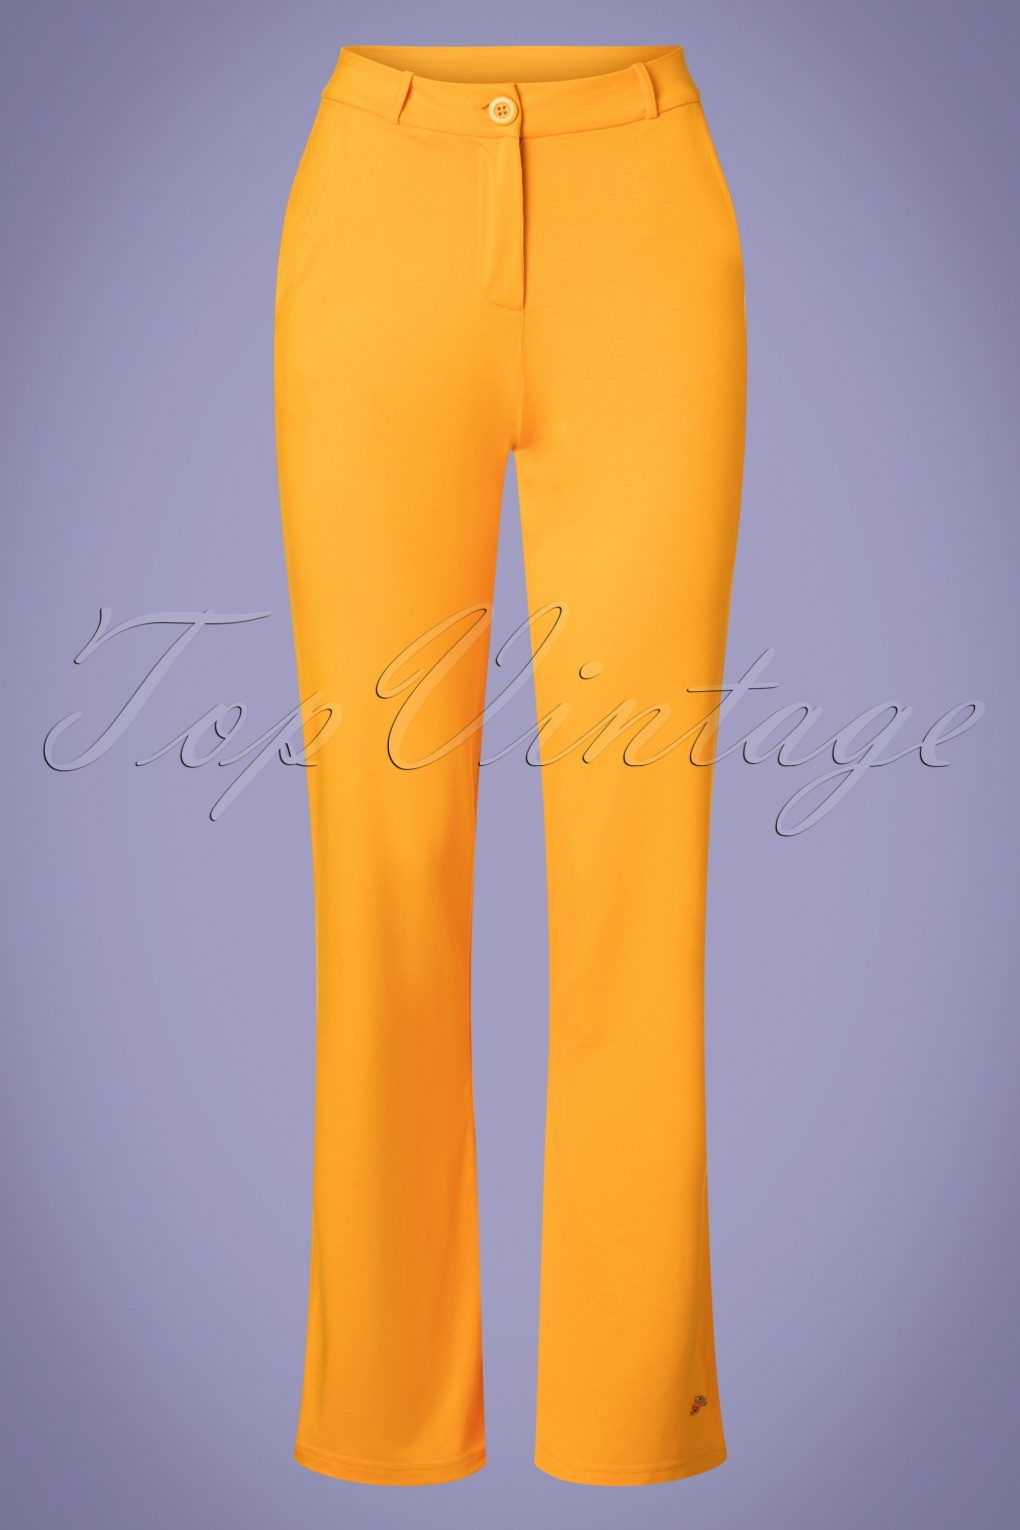 60s – 70s Pants, Jeans, Hippie, Bell Bottoms, Jumpsuits 60s Babs Baggy Trousers in Gold Yellow £47.77 AT vintagedancer.com